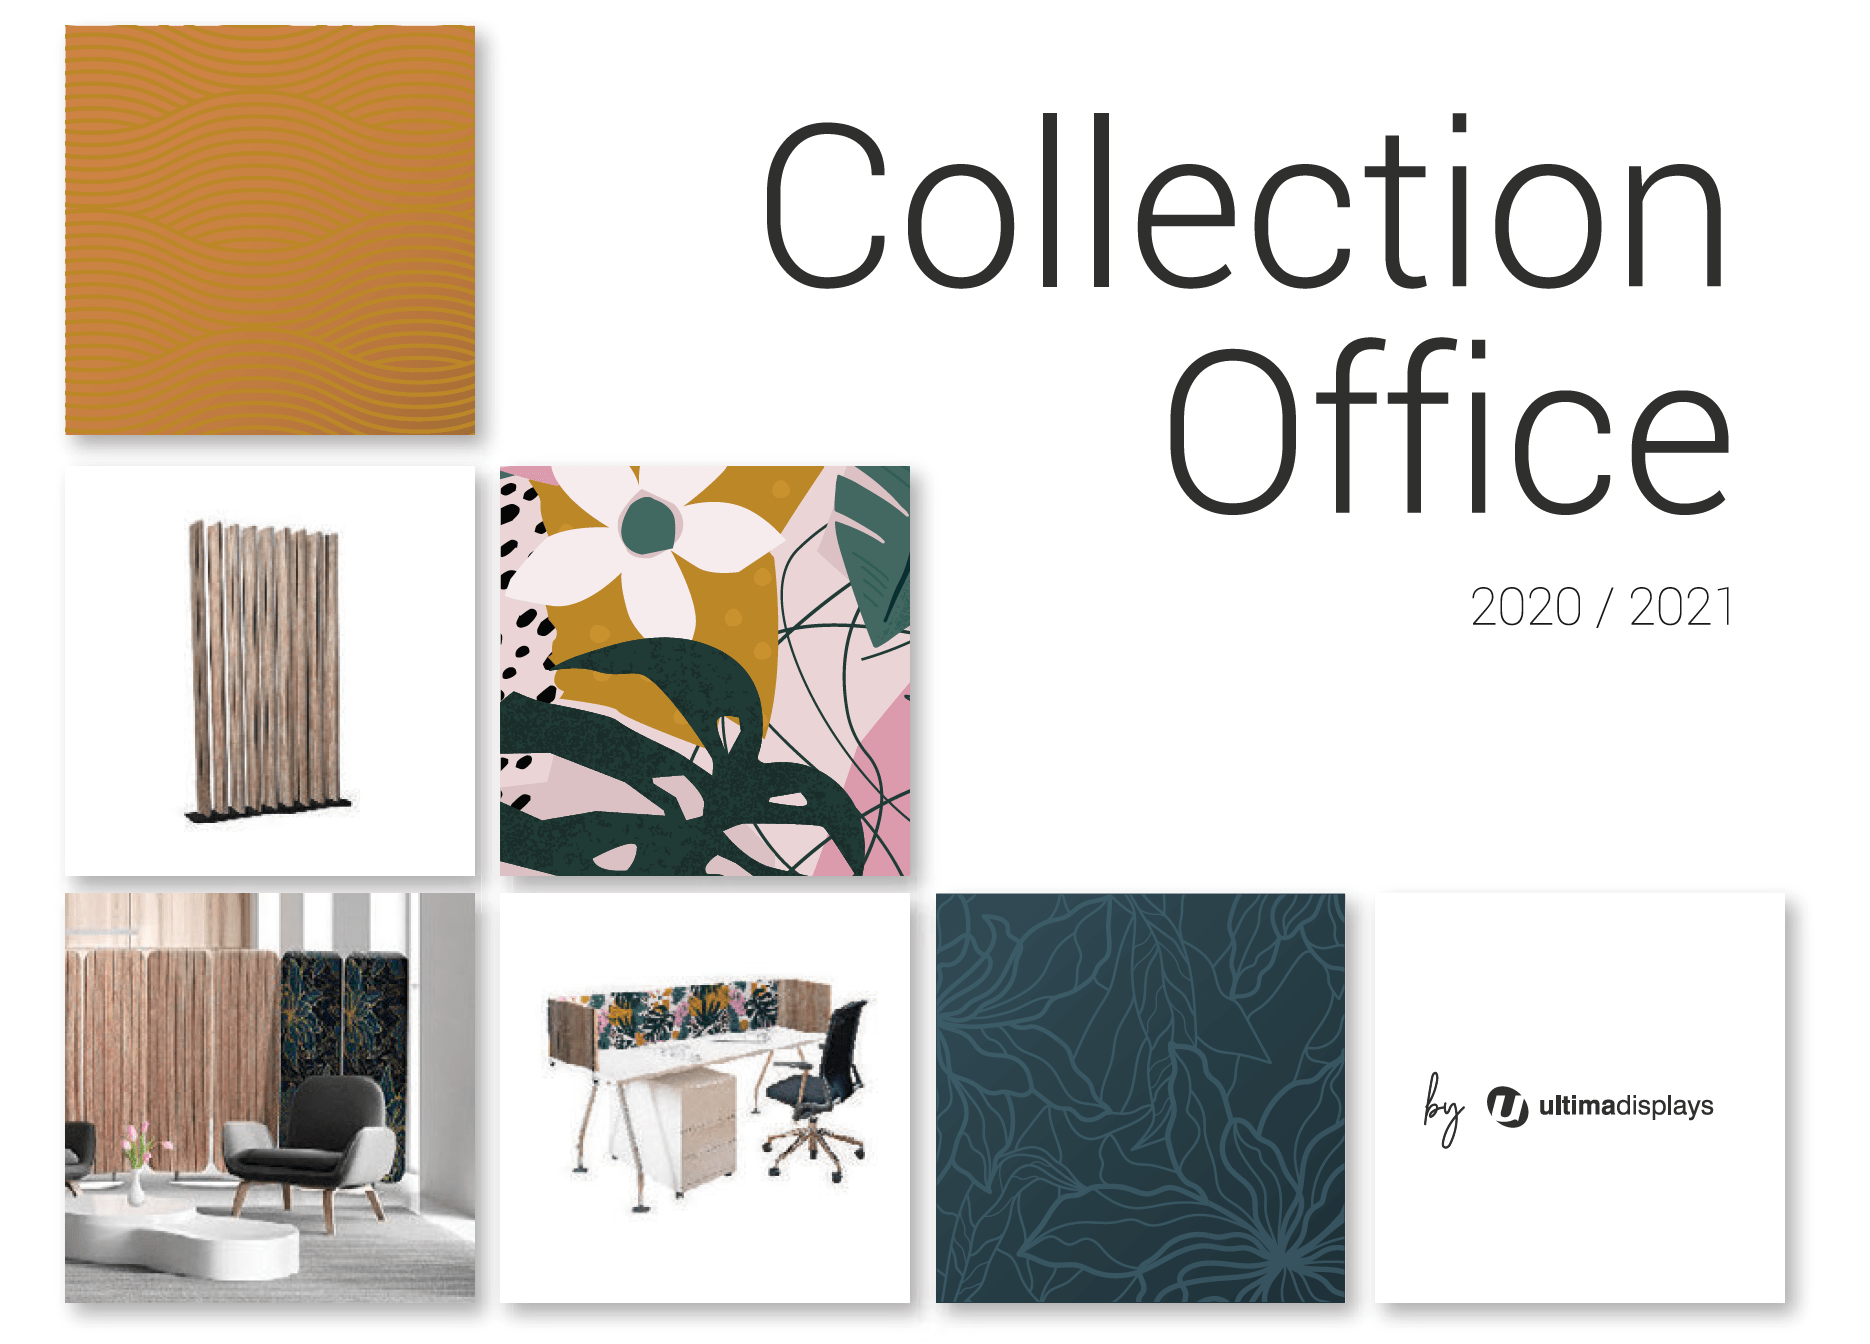 Collection Office 2020